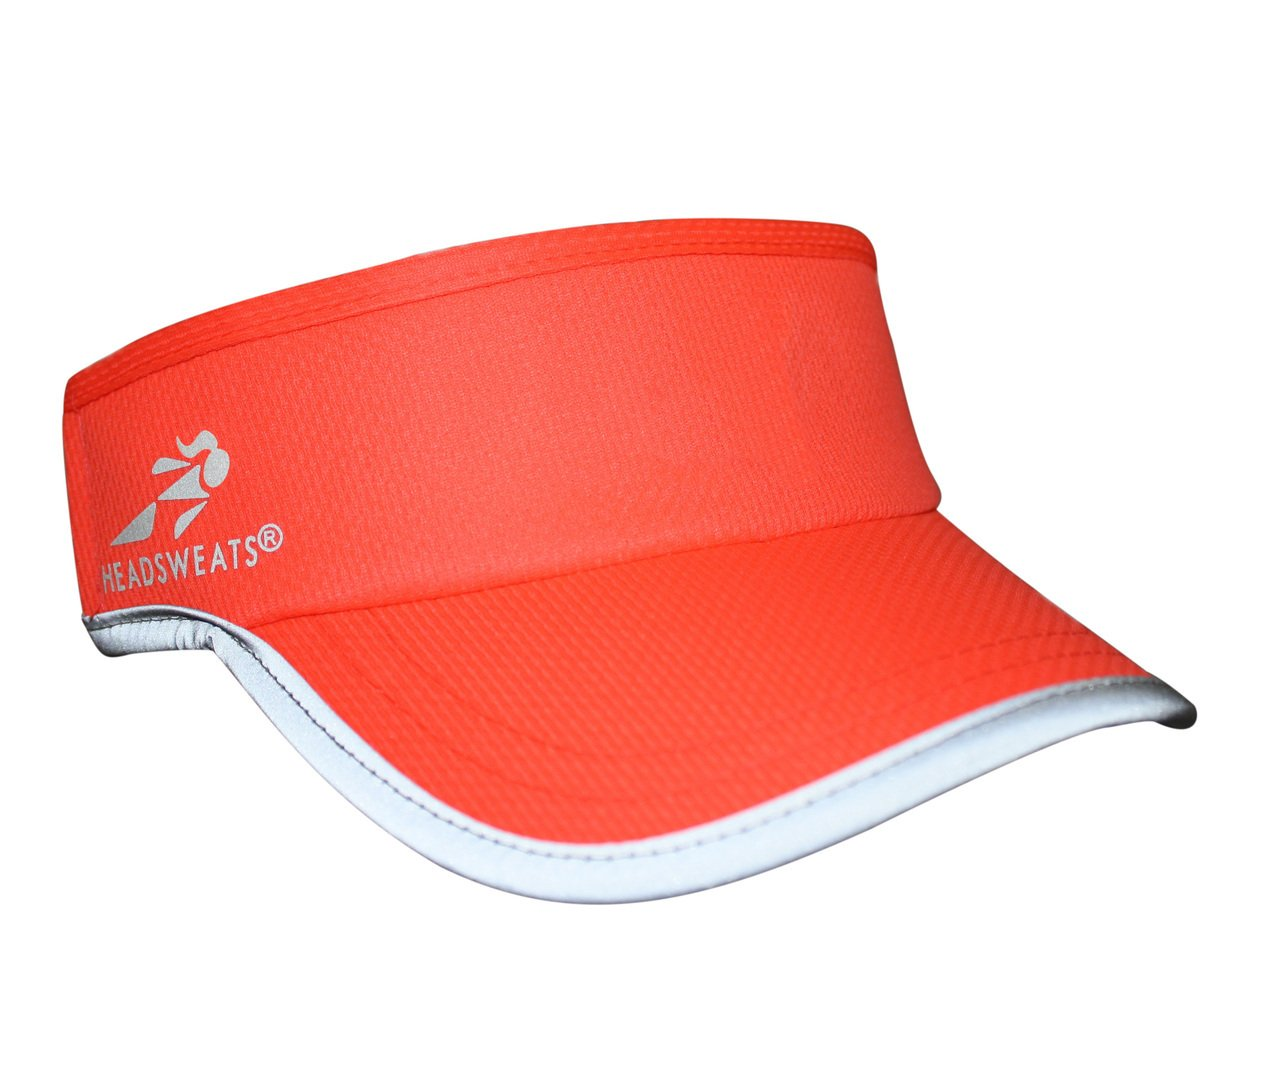 Headsweats Reflective Supervisor Bright Coral